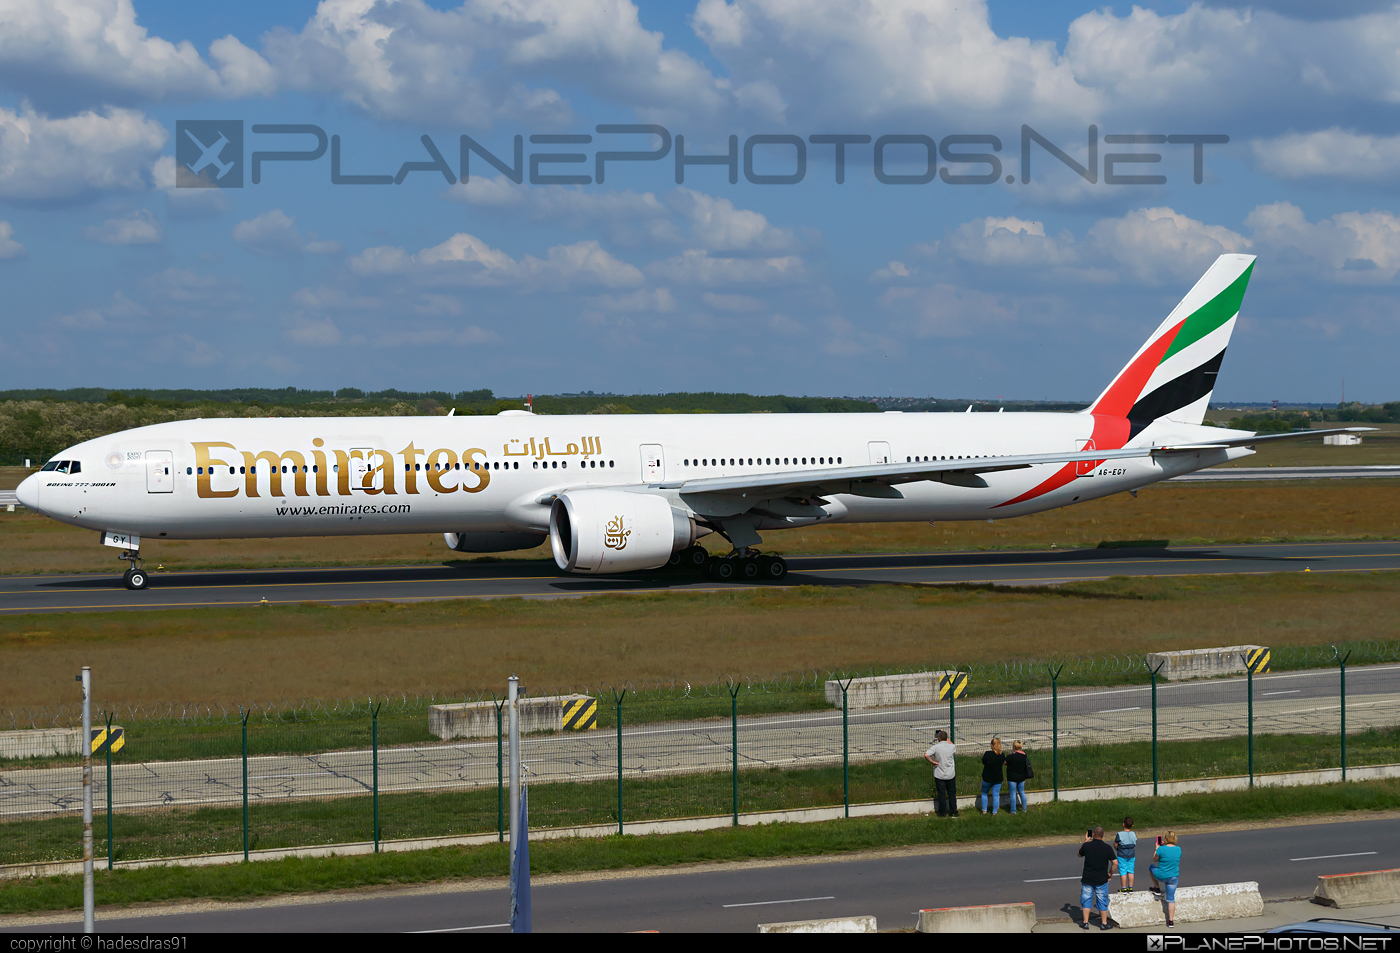 Boeing 777-300ER - A6-EGY operated by Emirates #b777 #b777er #boeing #boeing777 #emirates #tripleseven